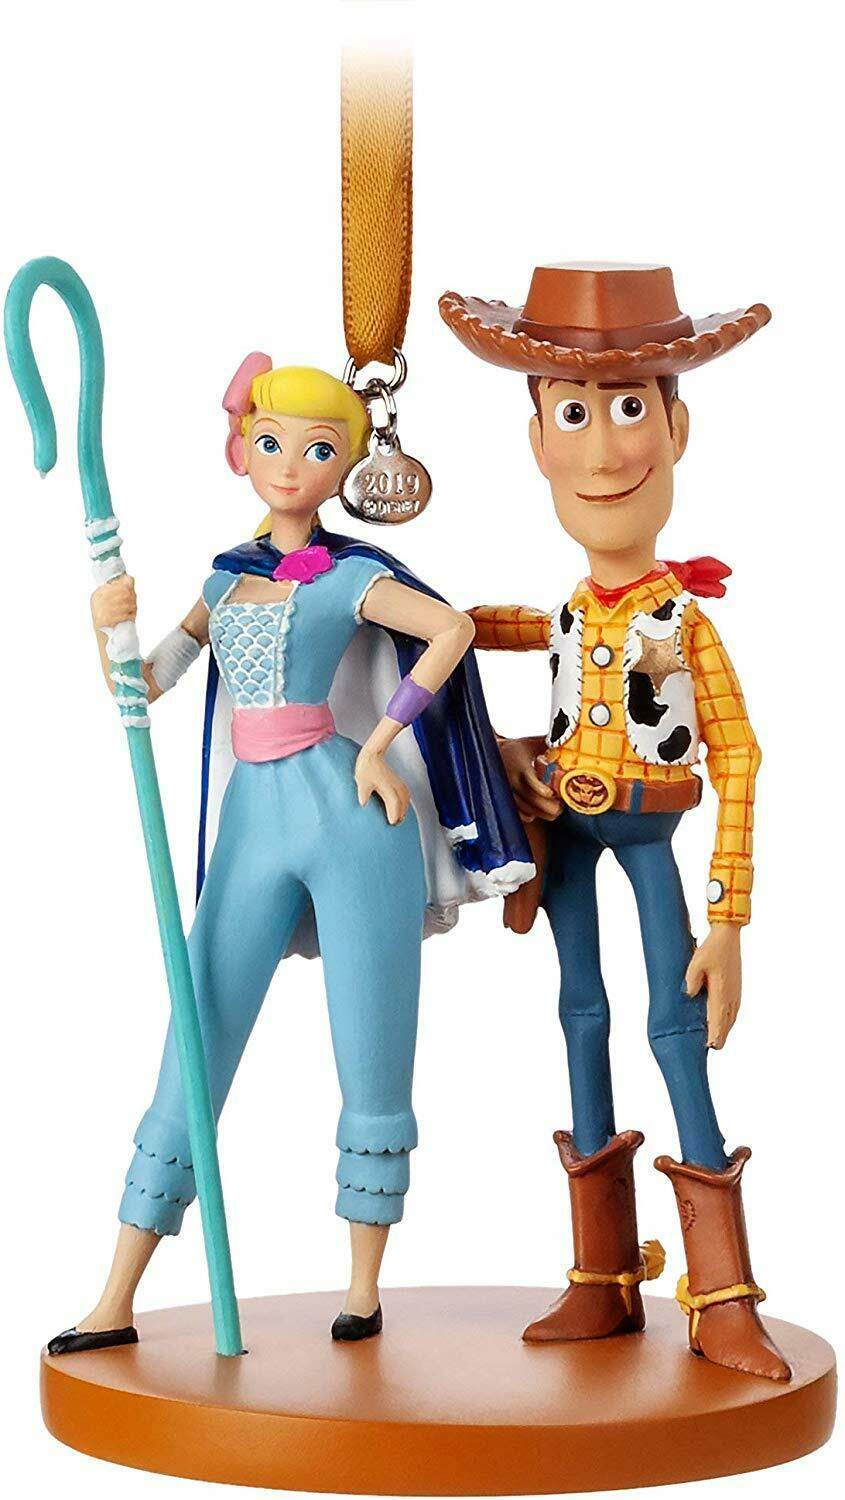 Woody and Bo Peep Sketchbook Ornament – Toy Story 4